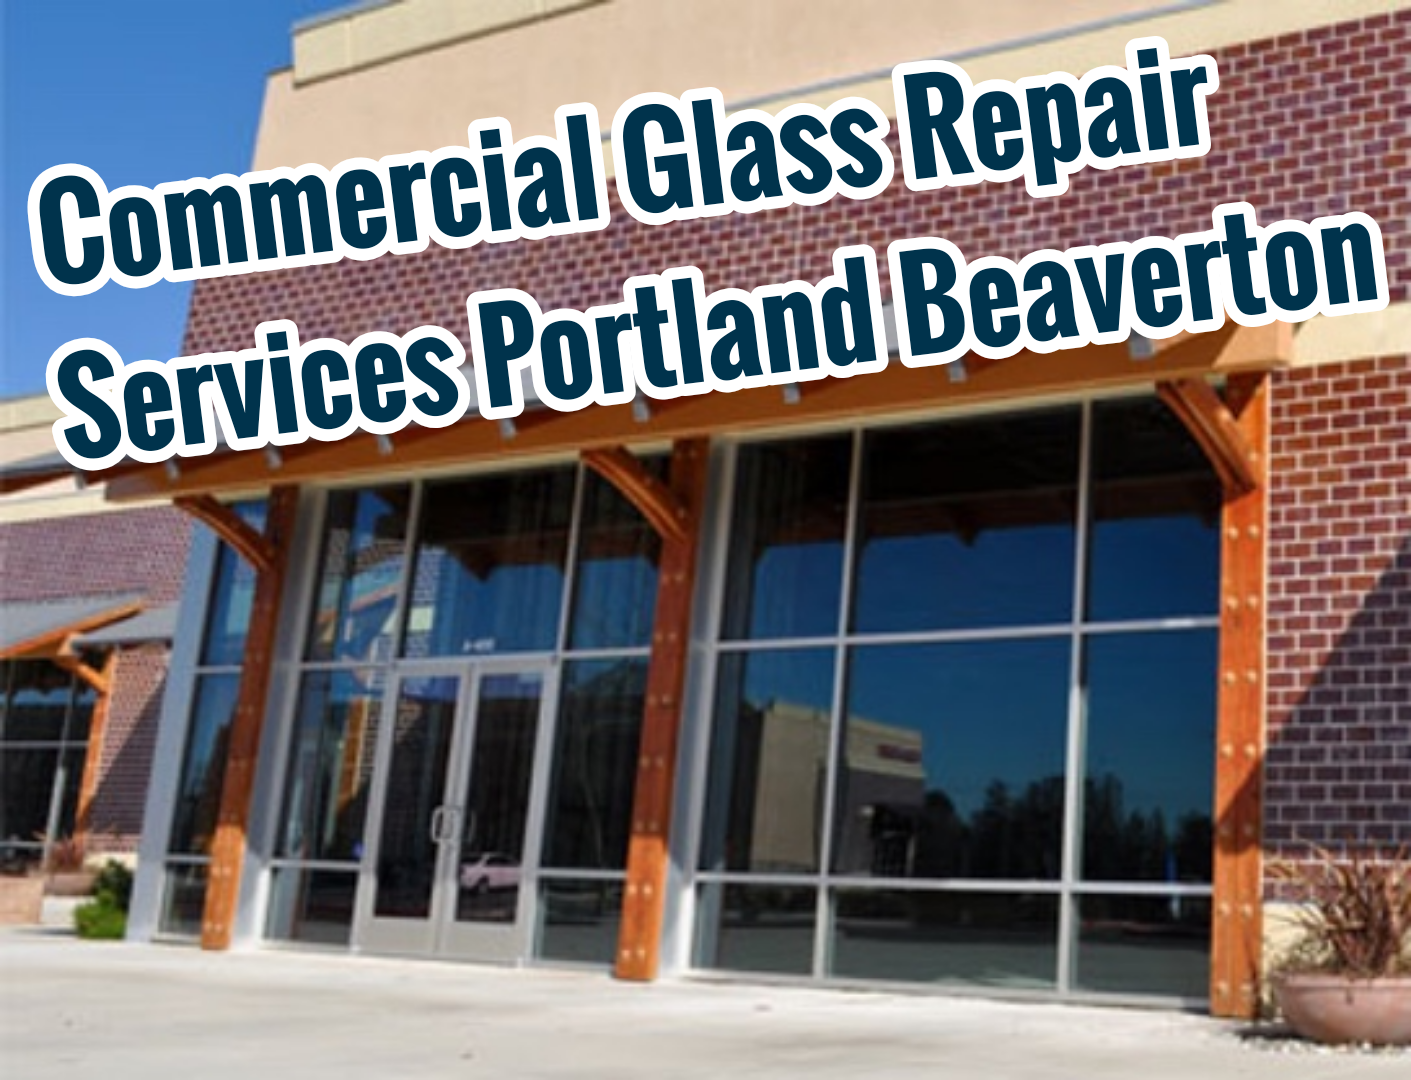 Commercial Glass Repair Services Portland Beaverton